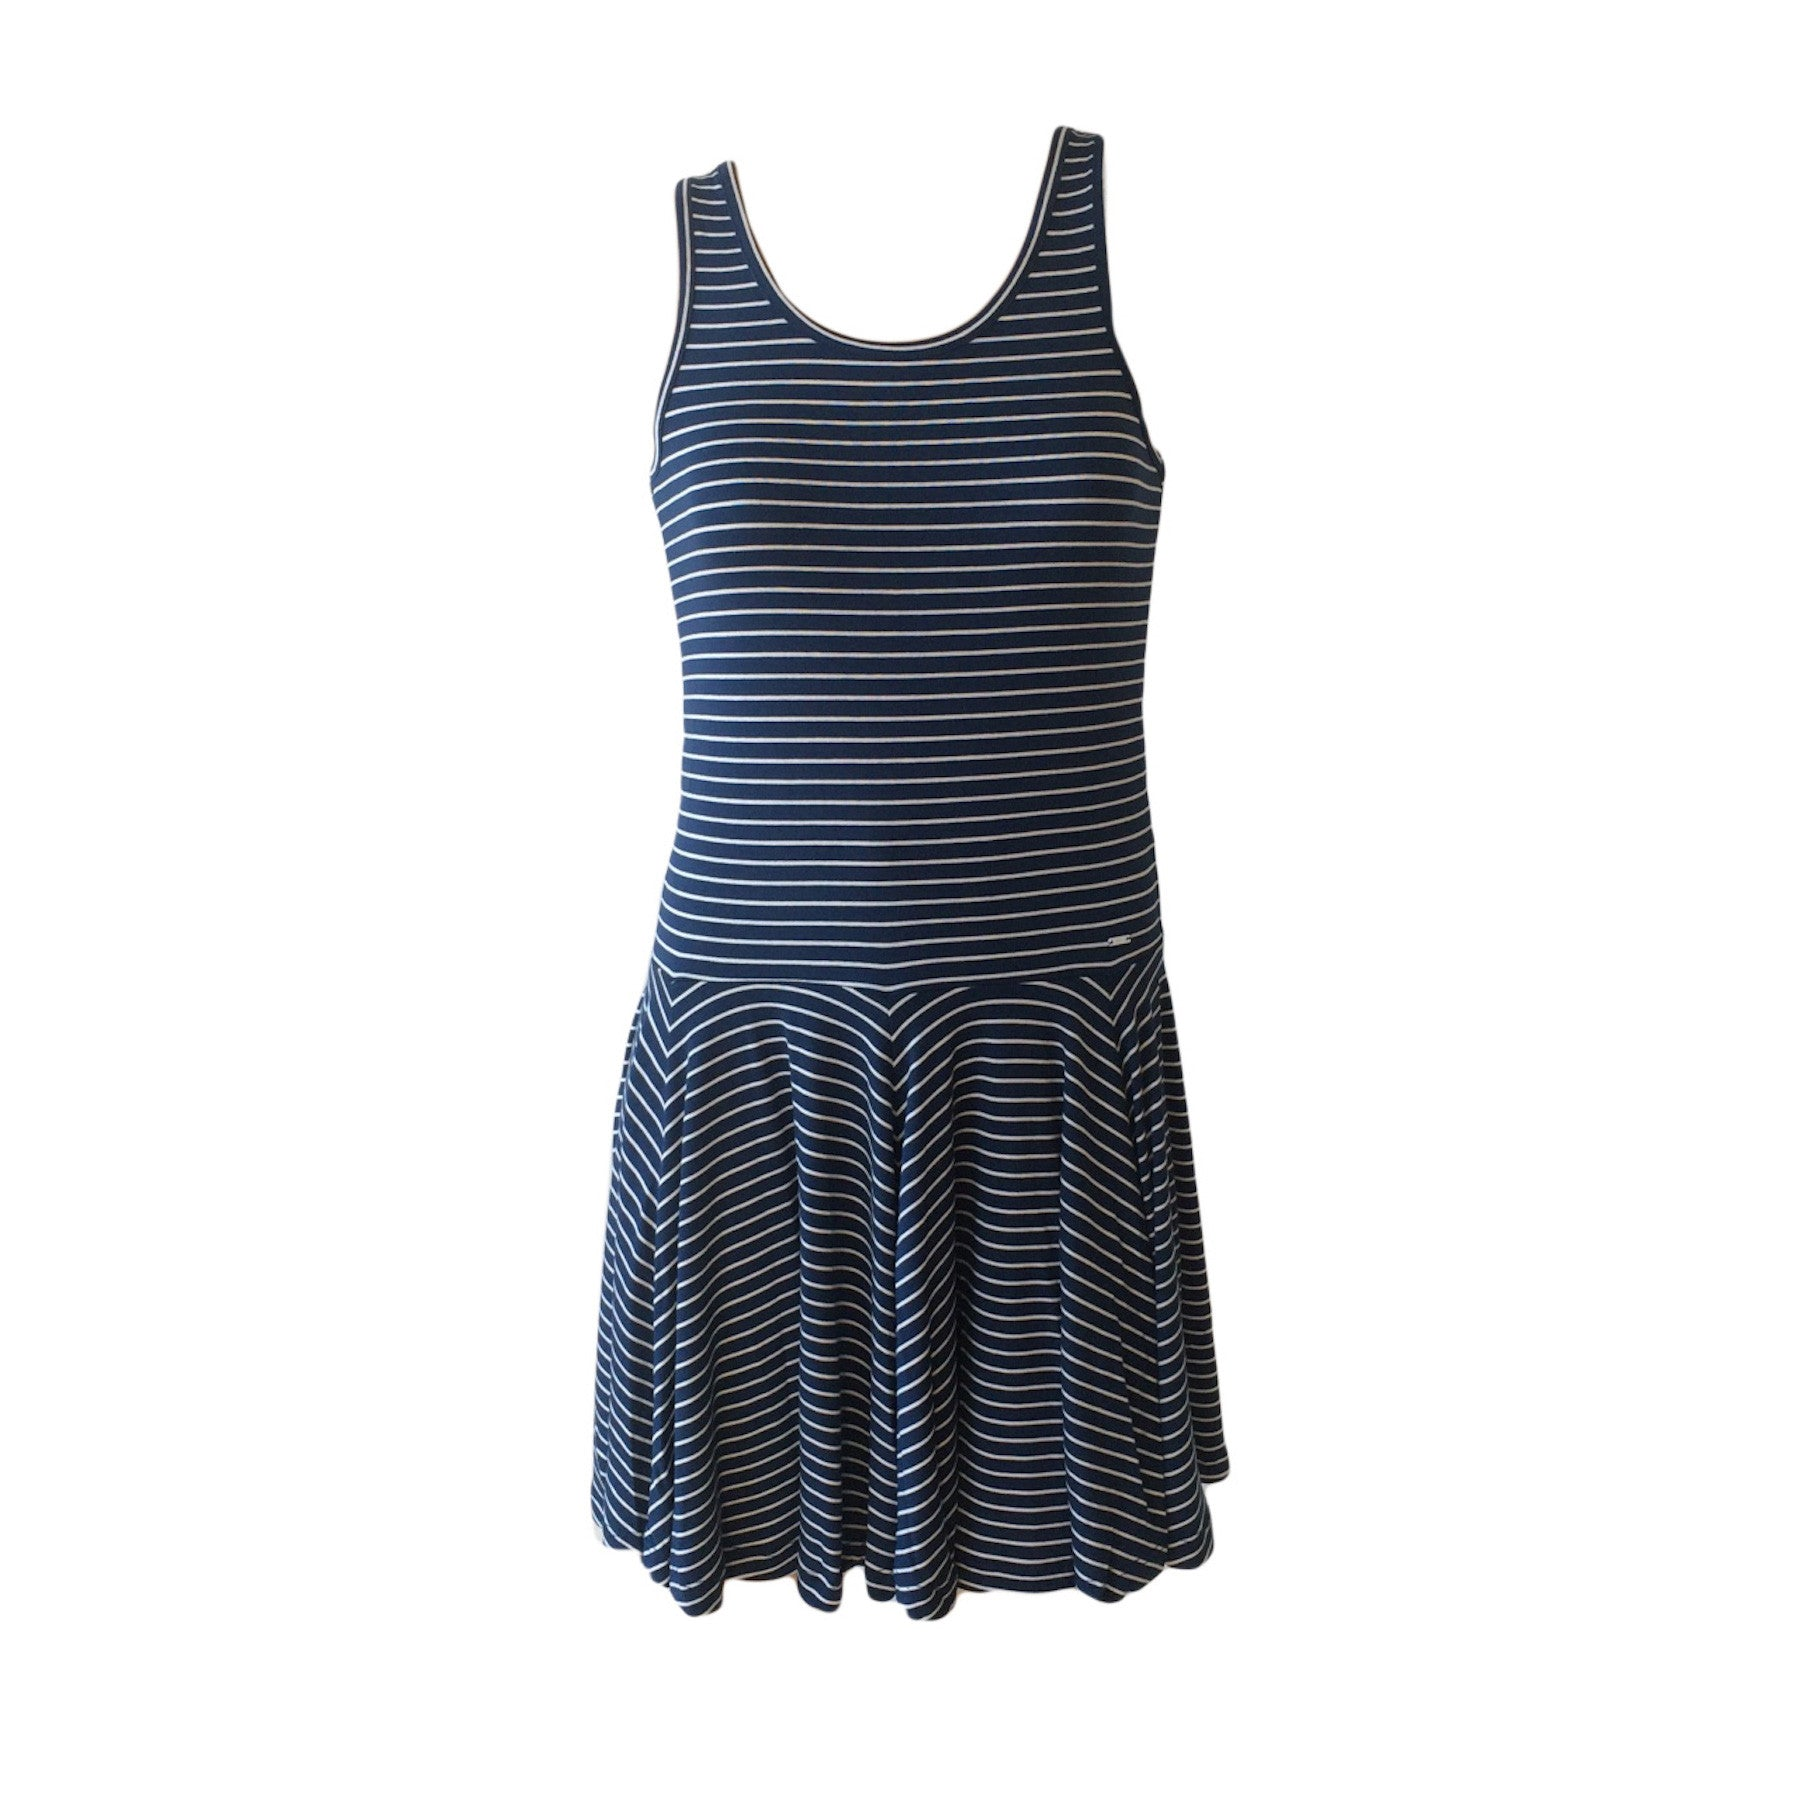 The Kathy Skater Dress by Belgium label SevenOneSeven features an all-over navy and white horizontal stripe pattern with traditional skater skirt feature. Soft cotton and good stretch make it a perfect Summer staple.